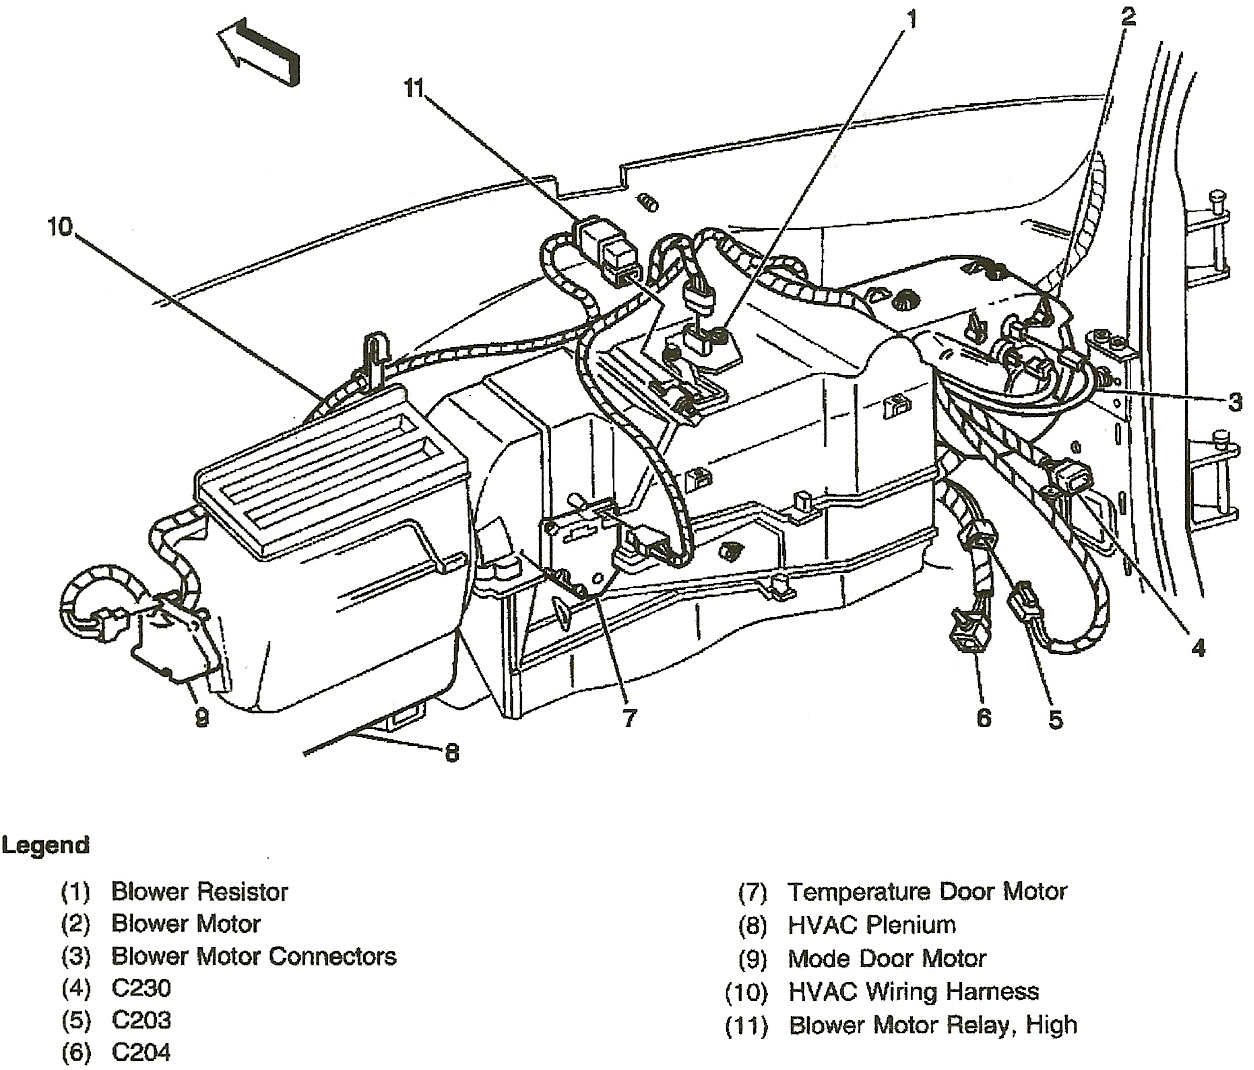 hight resolution of schematic diagram of 2003 chevrolet suburban data diagram schematic 2003 chevy suburban engine diagram